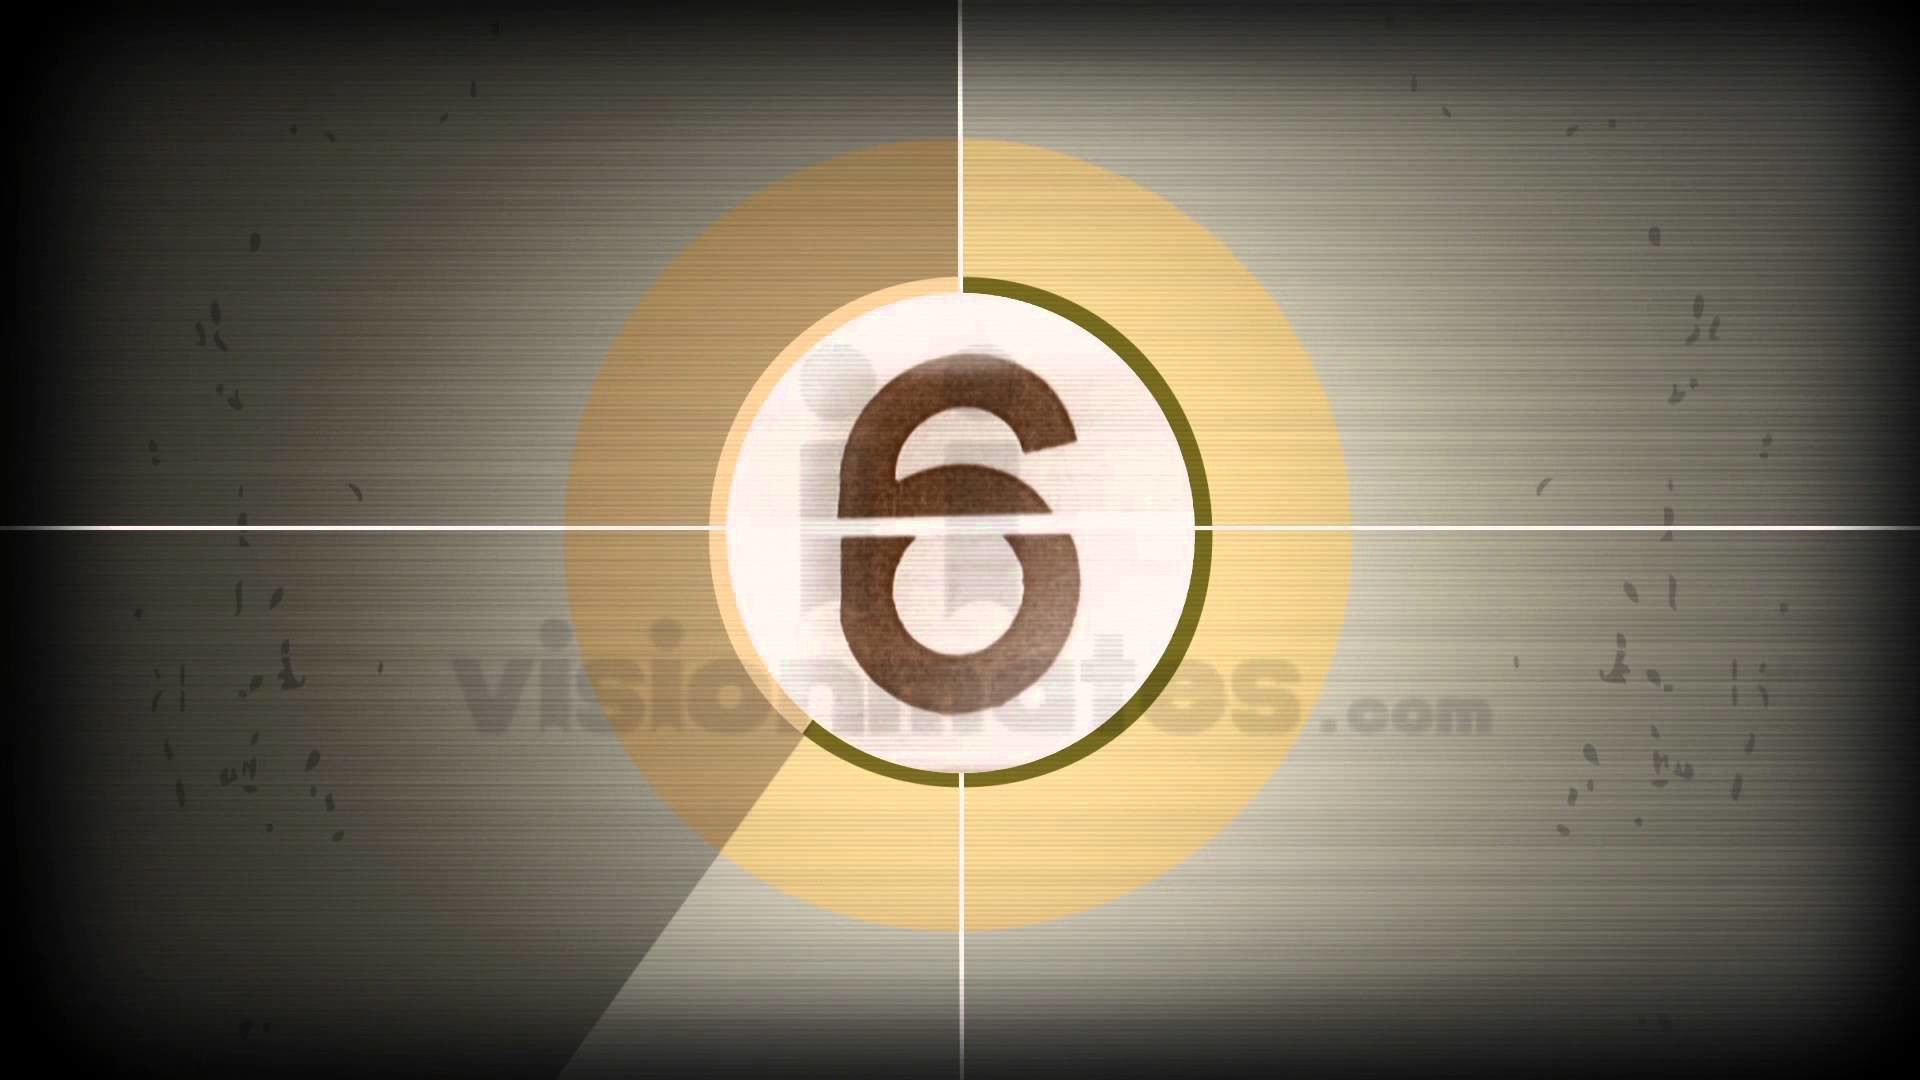 Countdown clock wallpaper 70 images - How to make a countdown your wallpaper ...